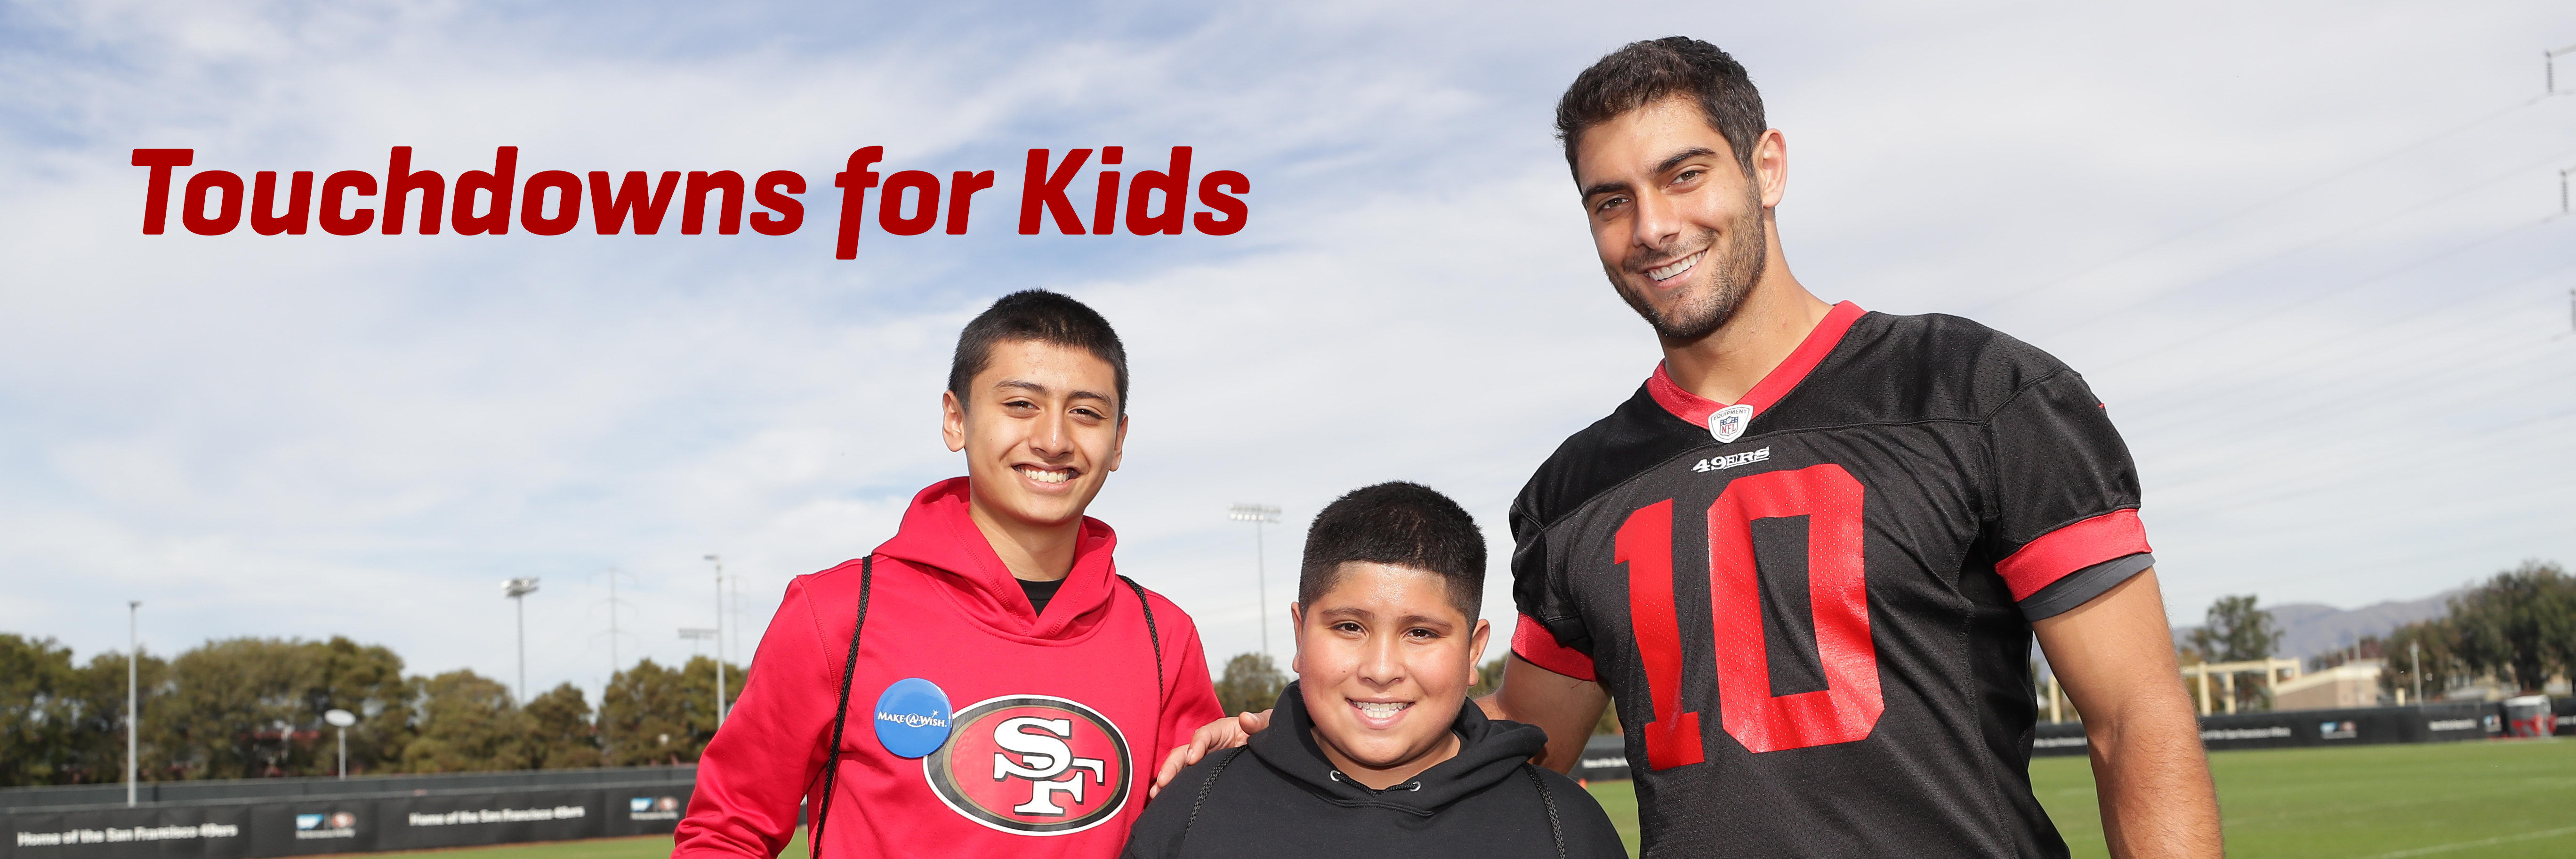 Celebrating the 49ers Success on the Field with Charitable Contributions off the Field